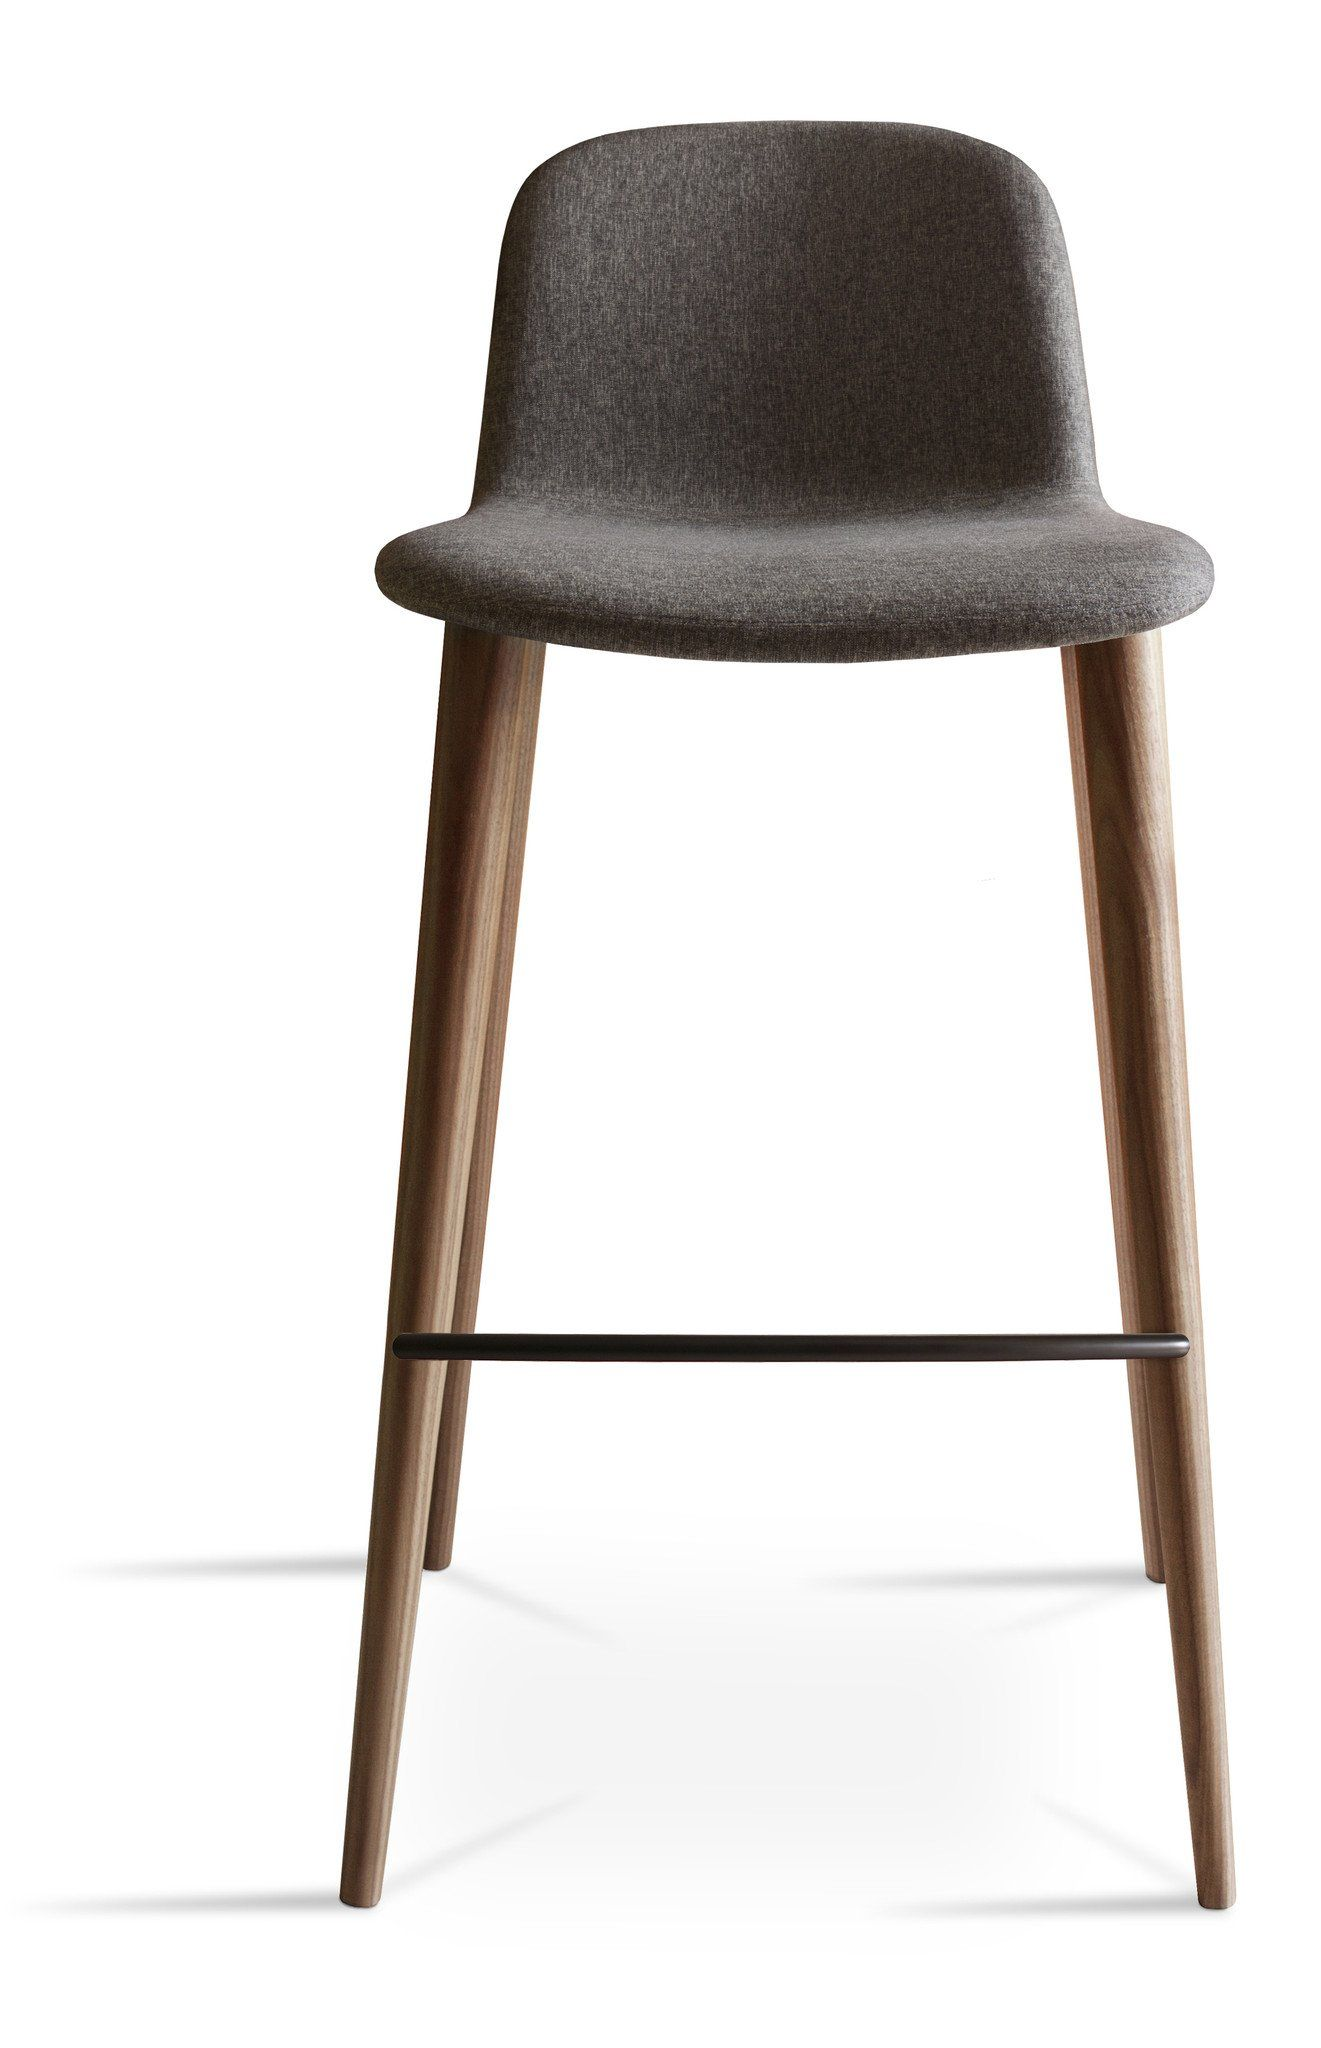 "Design by Omar De Biaggio  3d plywood shell Curved-back Wood legs Footrest 12 x faux leather standard choices Contract Quality faux, fire retardant to BS7176 Crib 5 Many other fabrics are available. If you would like an alternative fabric, then please select ""Alternative Fabric"" from the drop down menus and we will contact you on placing your order We reserve the right to charge an Additional amount for an alternative fabric Seat Height 770mm Width 520mm Depth 500mm Counter Seat Height 660mm…"